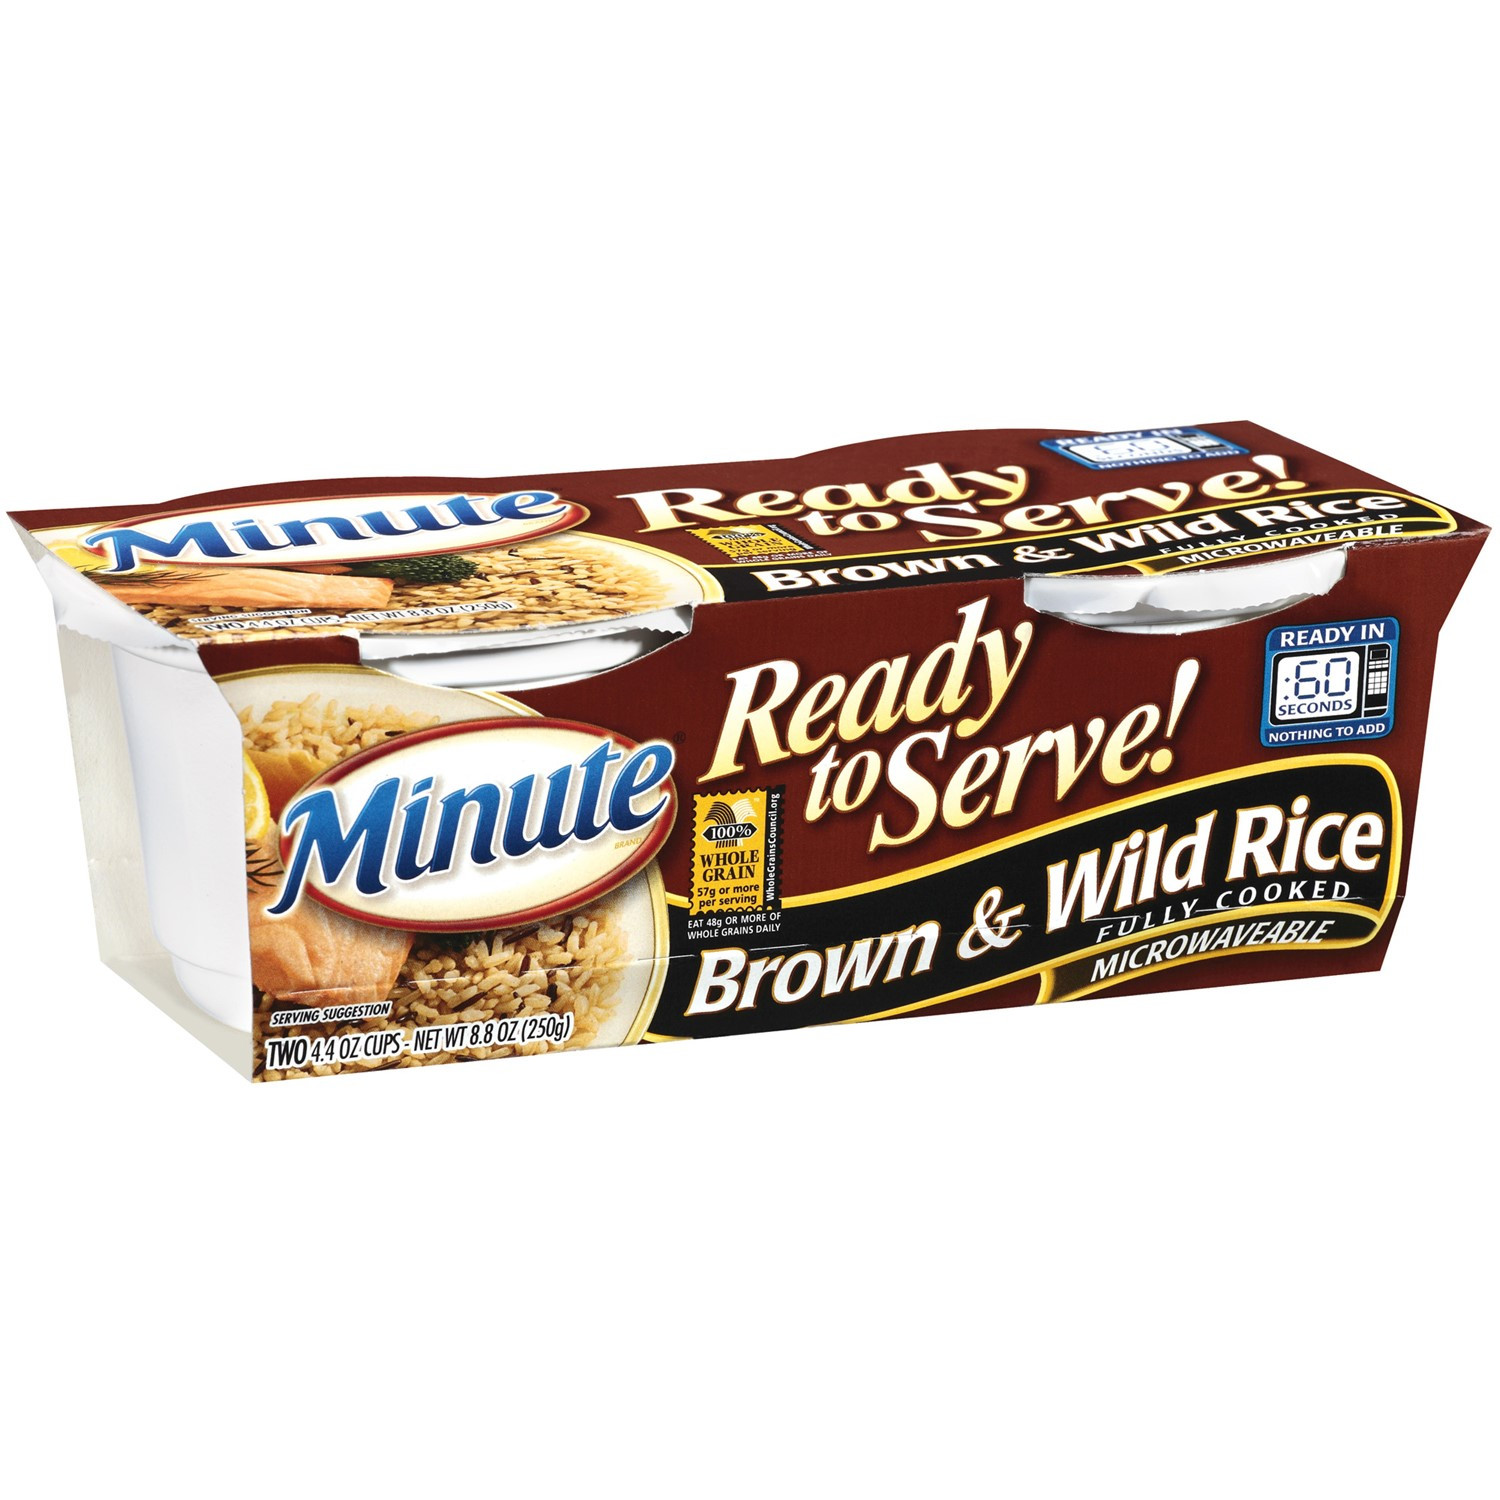 Brown Rice Walmart  Minute Ready to Serve Brown & Wild Rice 2 4 4 Ounce cups